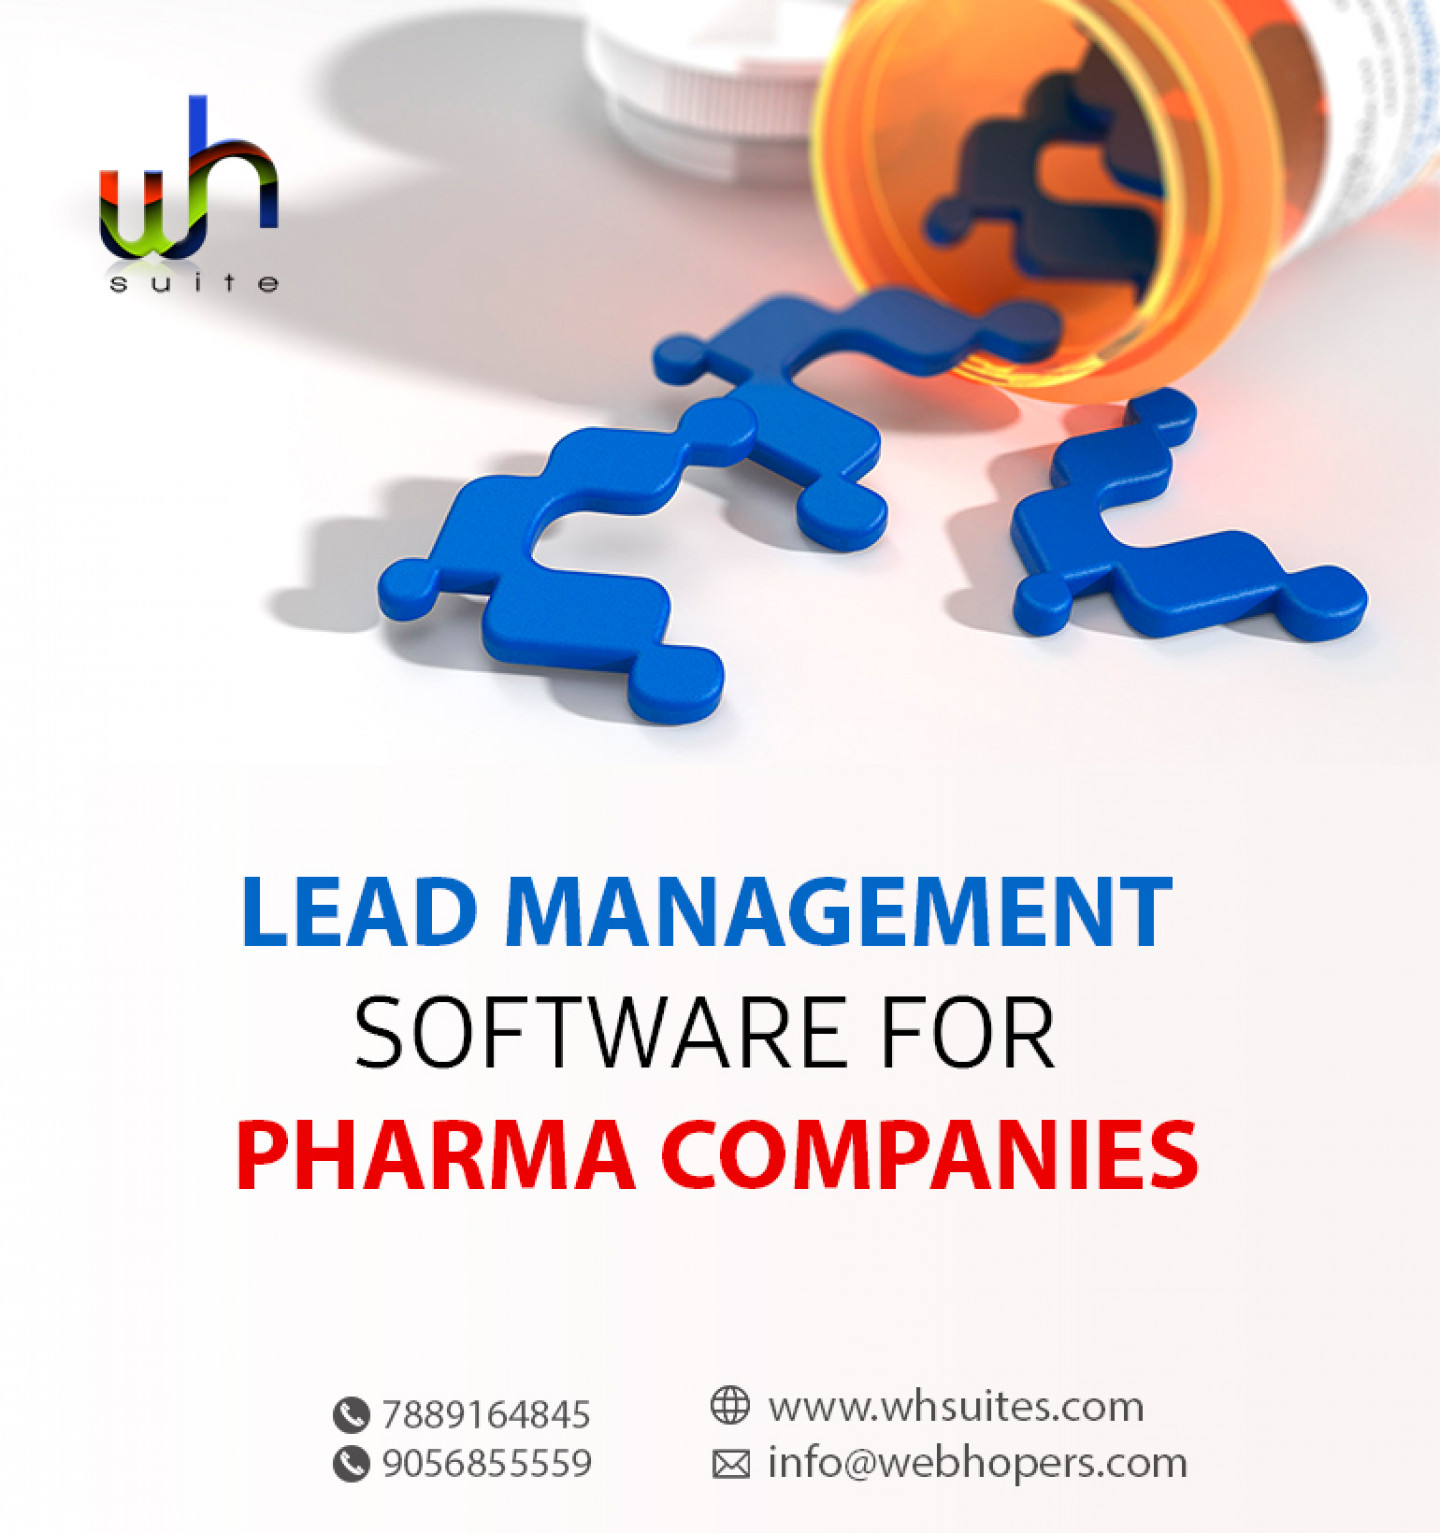 lead management software for pharma